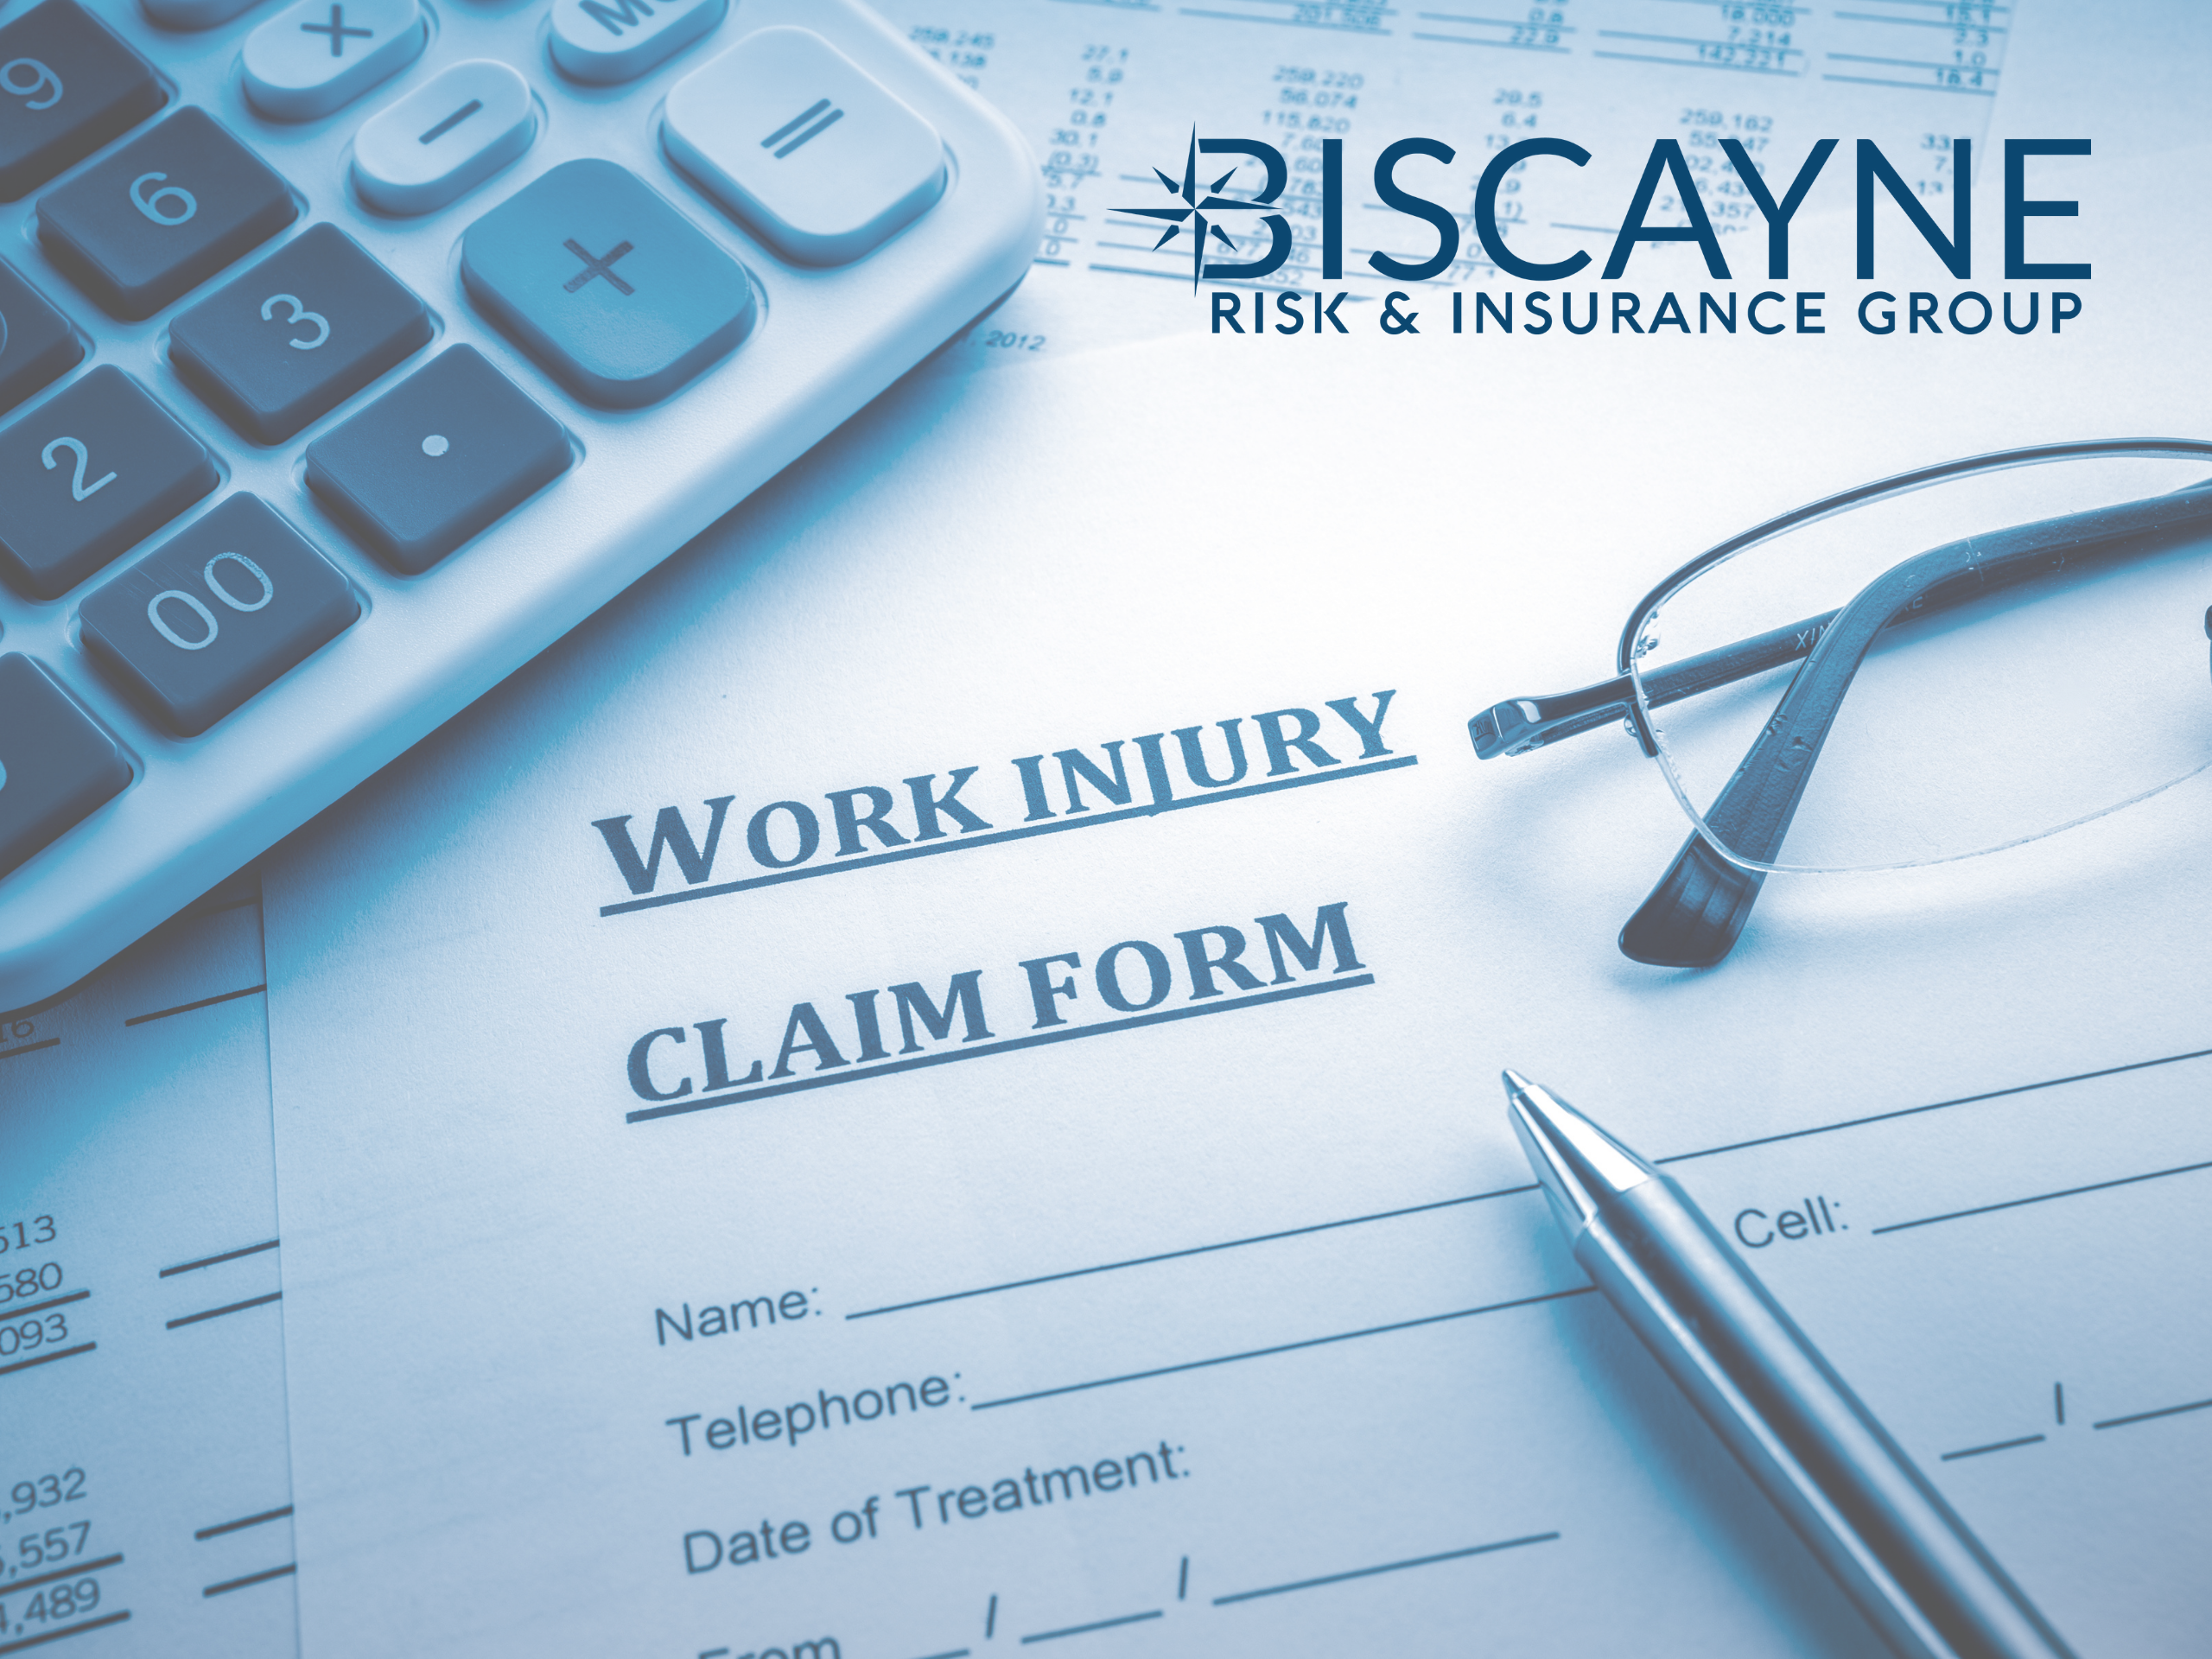 What To Do After An Employee Injury Claim Is Filed